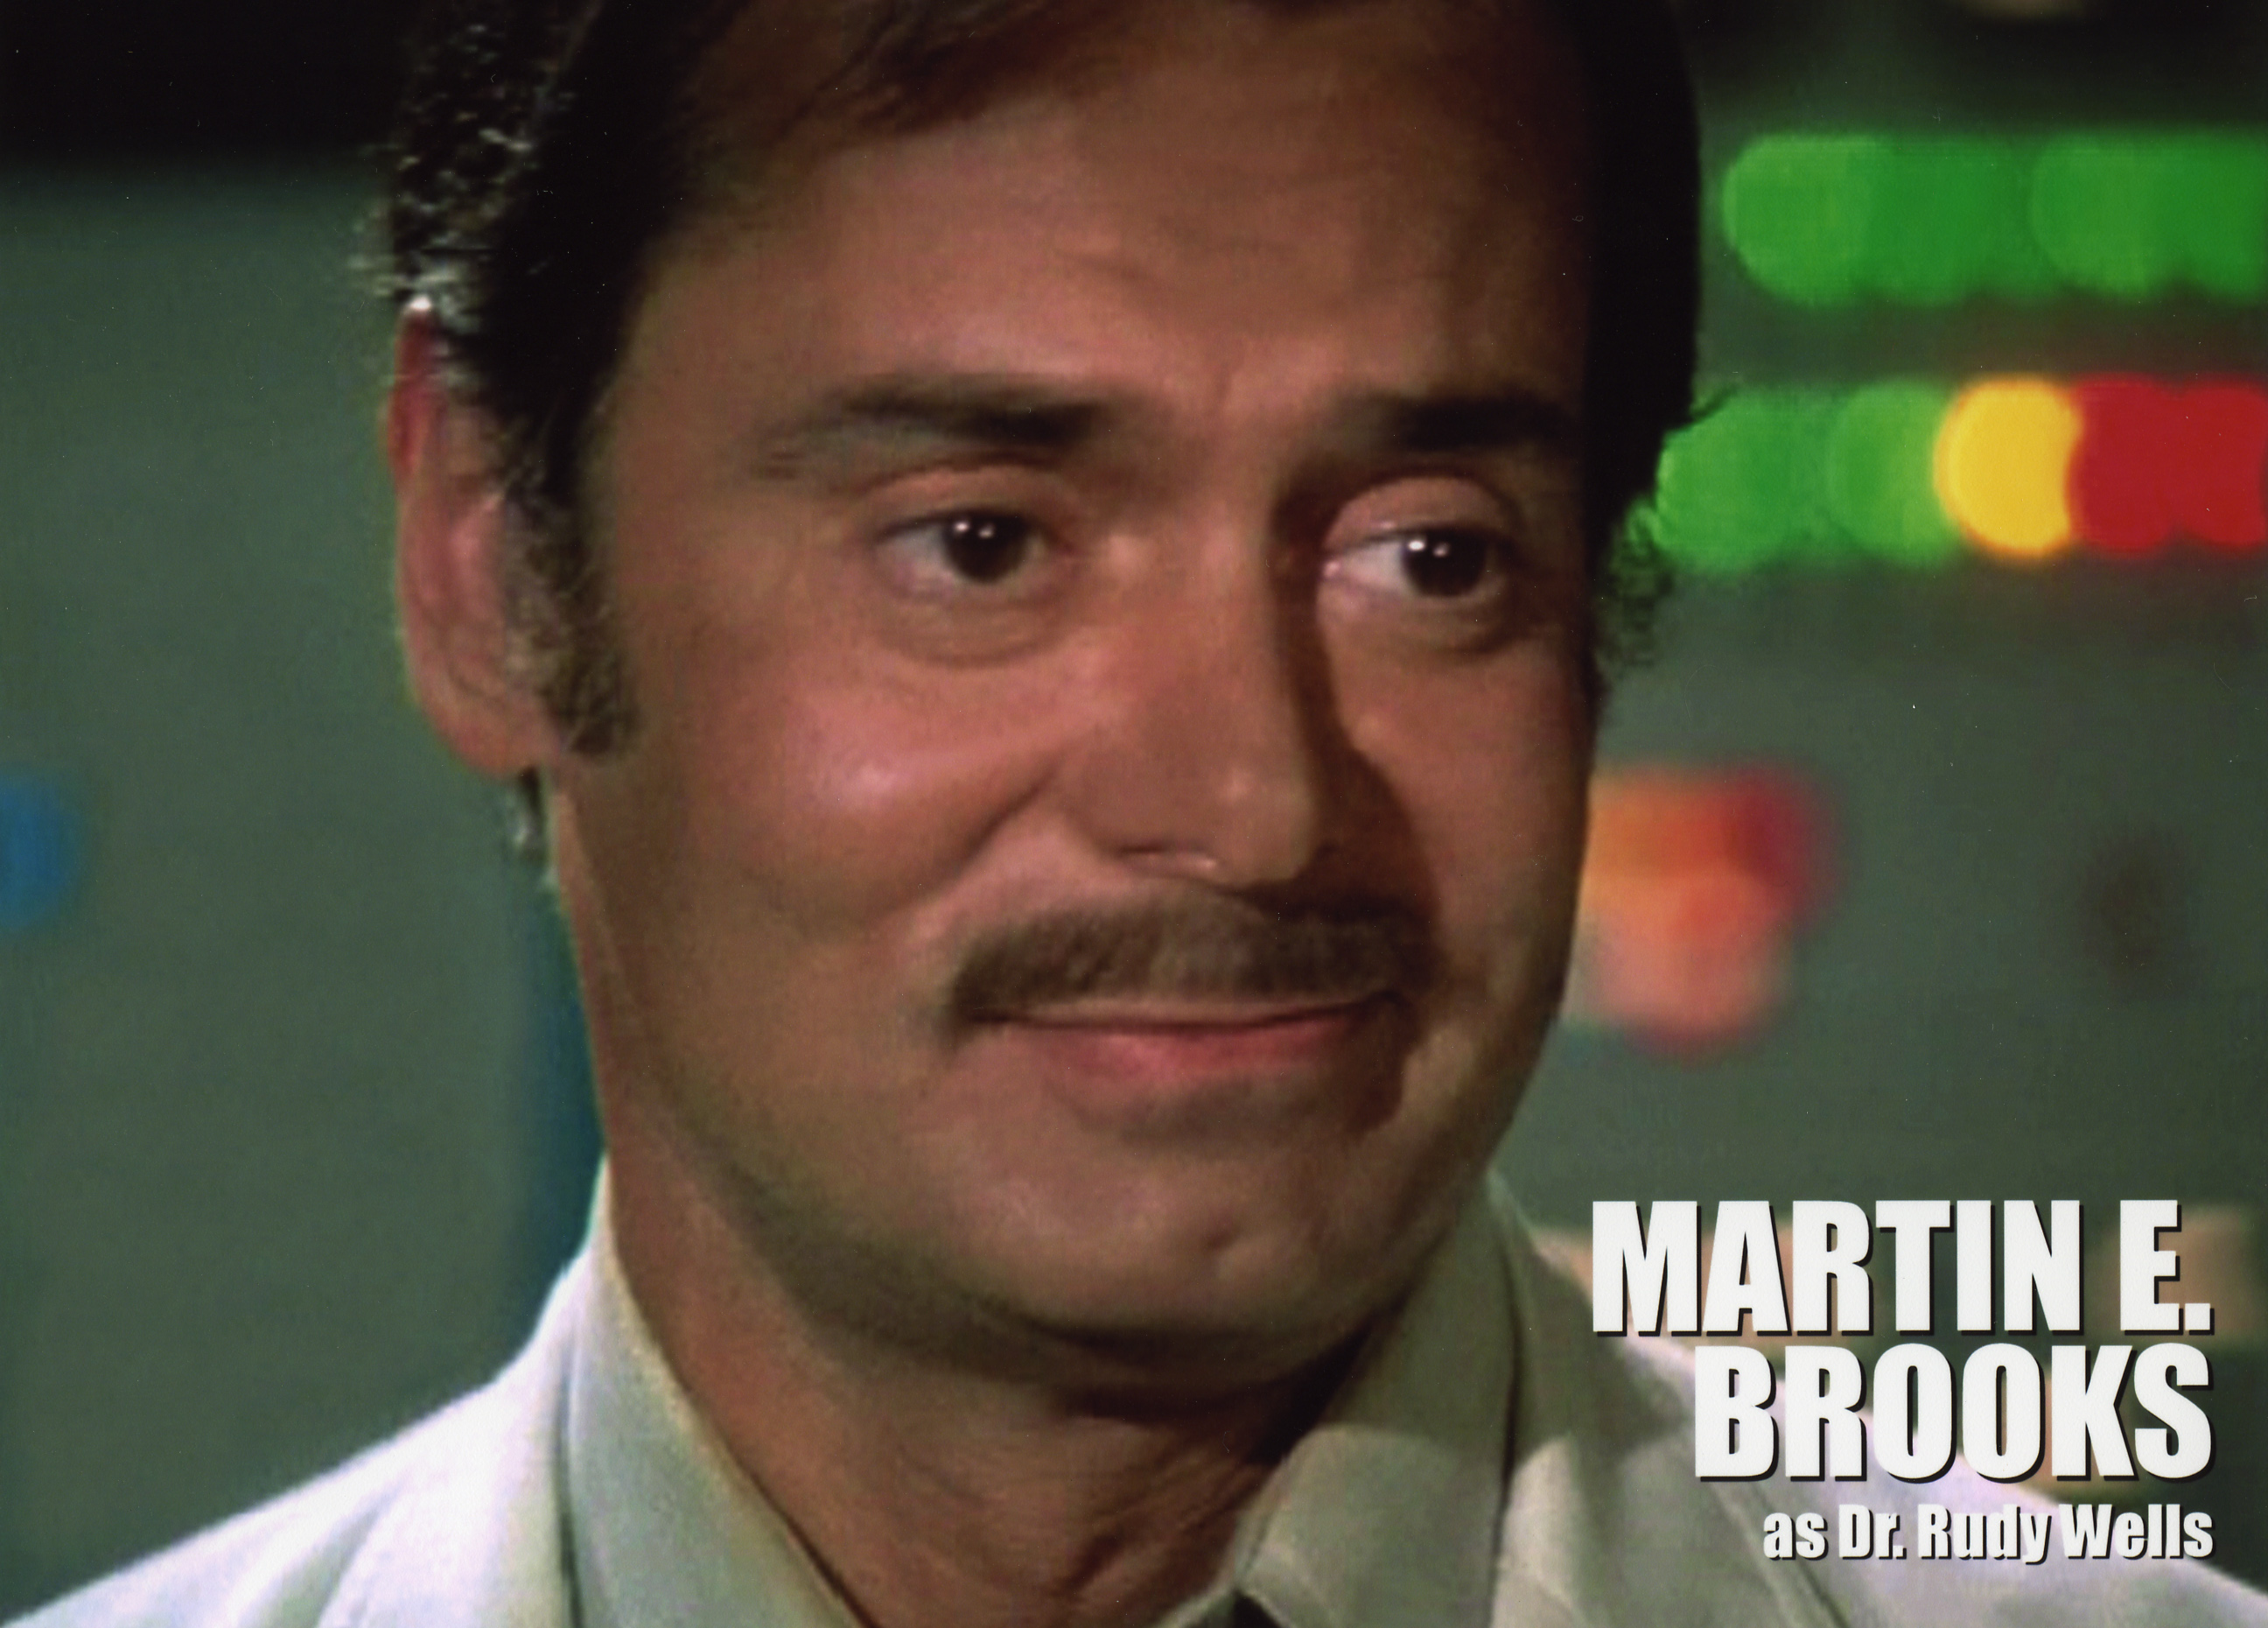 Martin E. Brooks as Dr. Rudy Wells